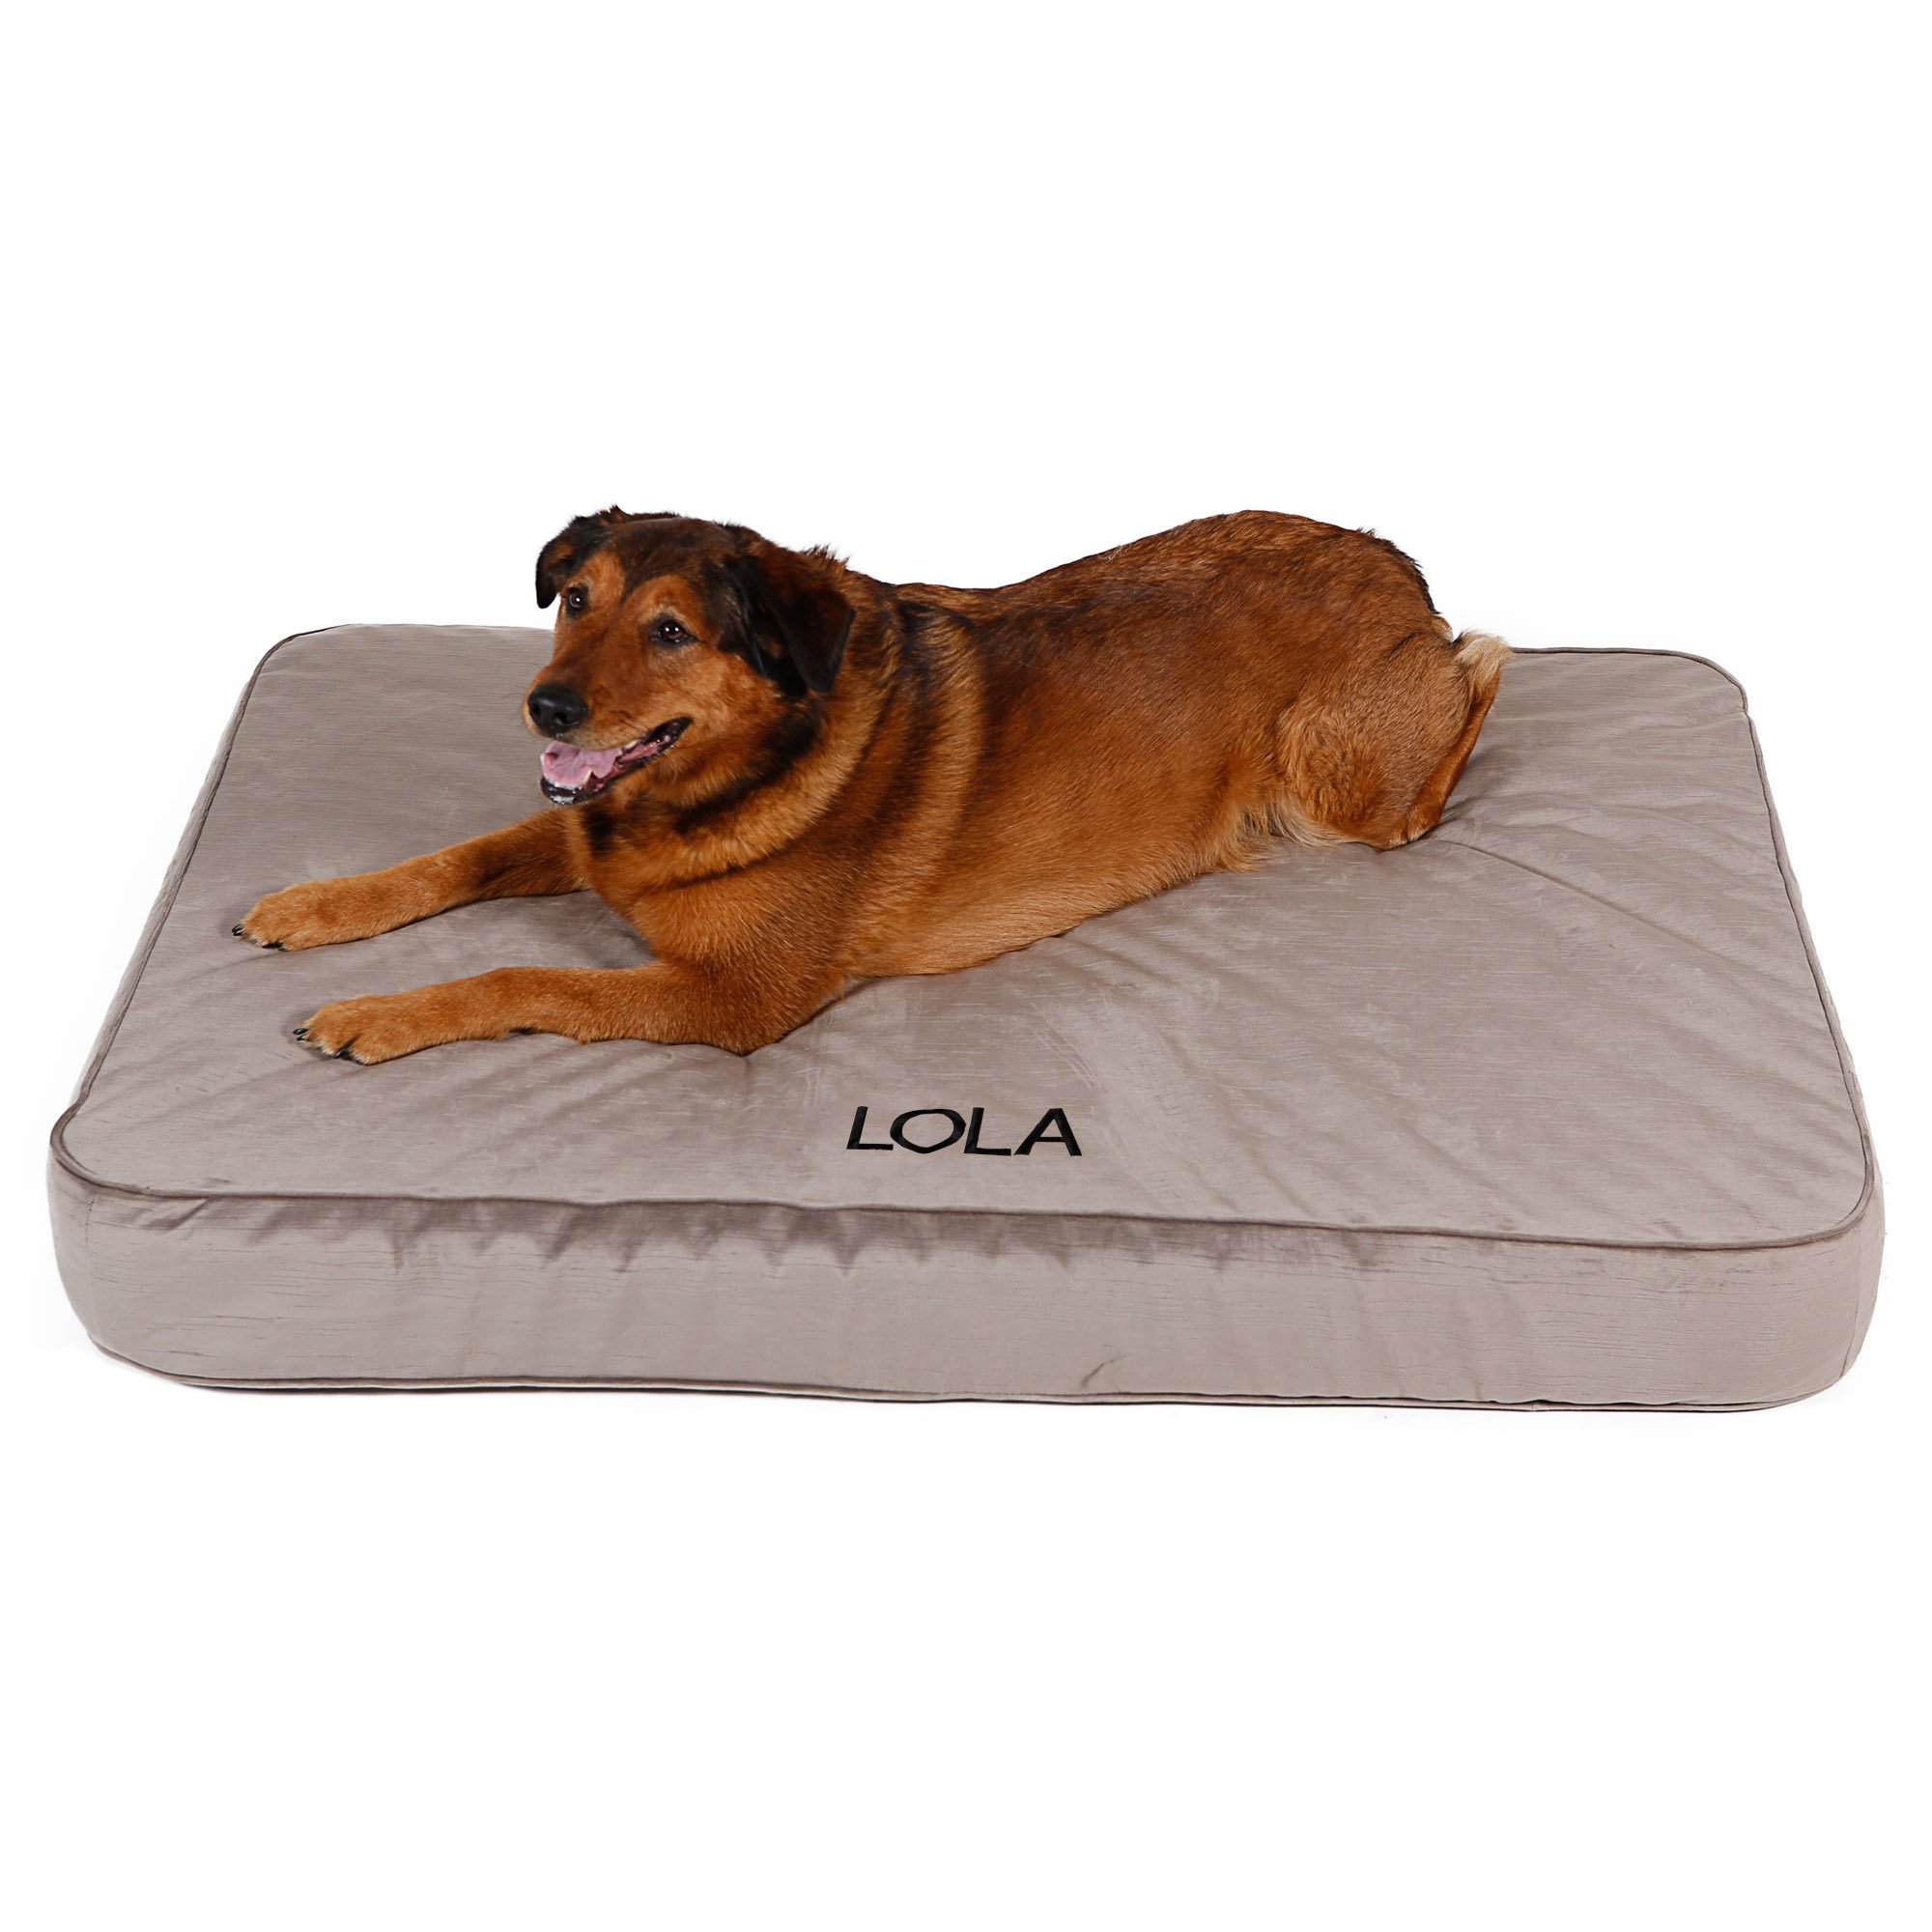 Foster Smith Dog Beds